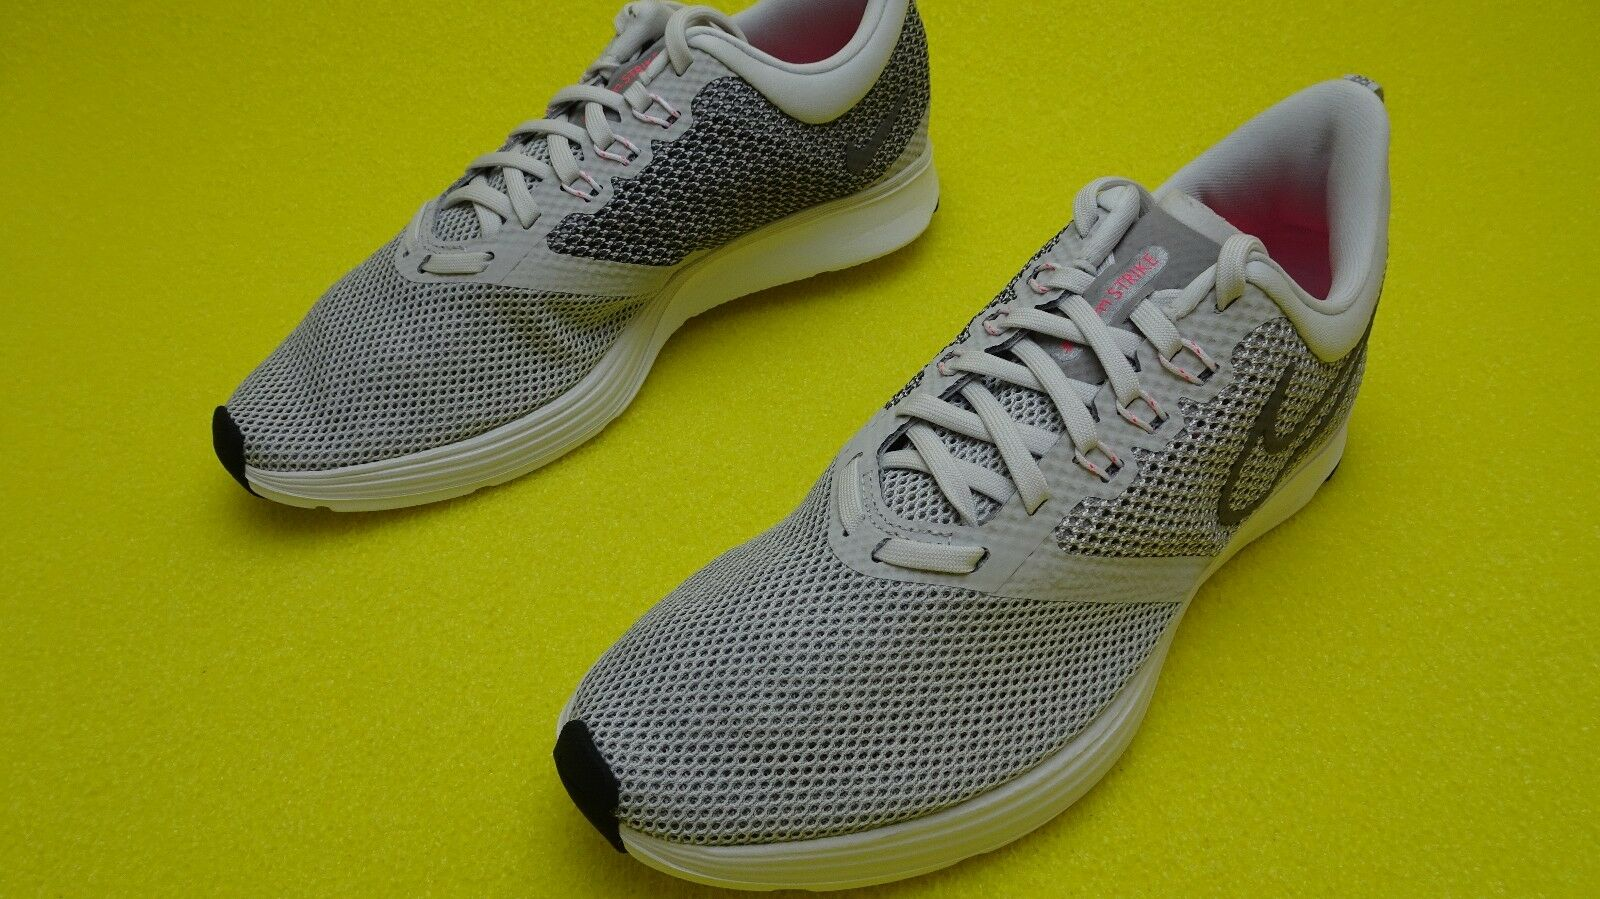 c688455b709a0 Nike Zoom Strike Women s Running Shoes Grey Grey Grey Gunsmoke White  AJ0188-006 8 - 13 88bf09